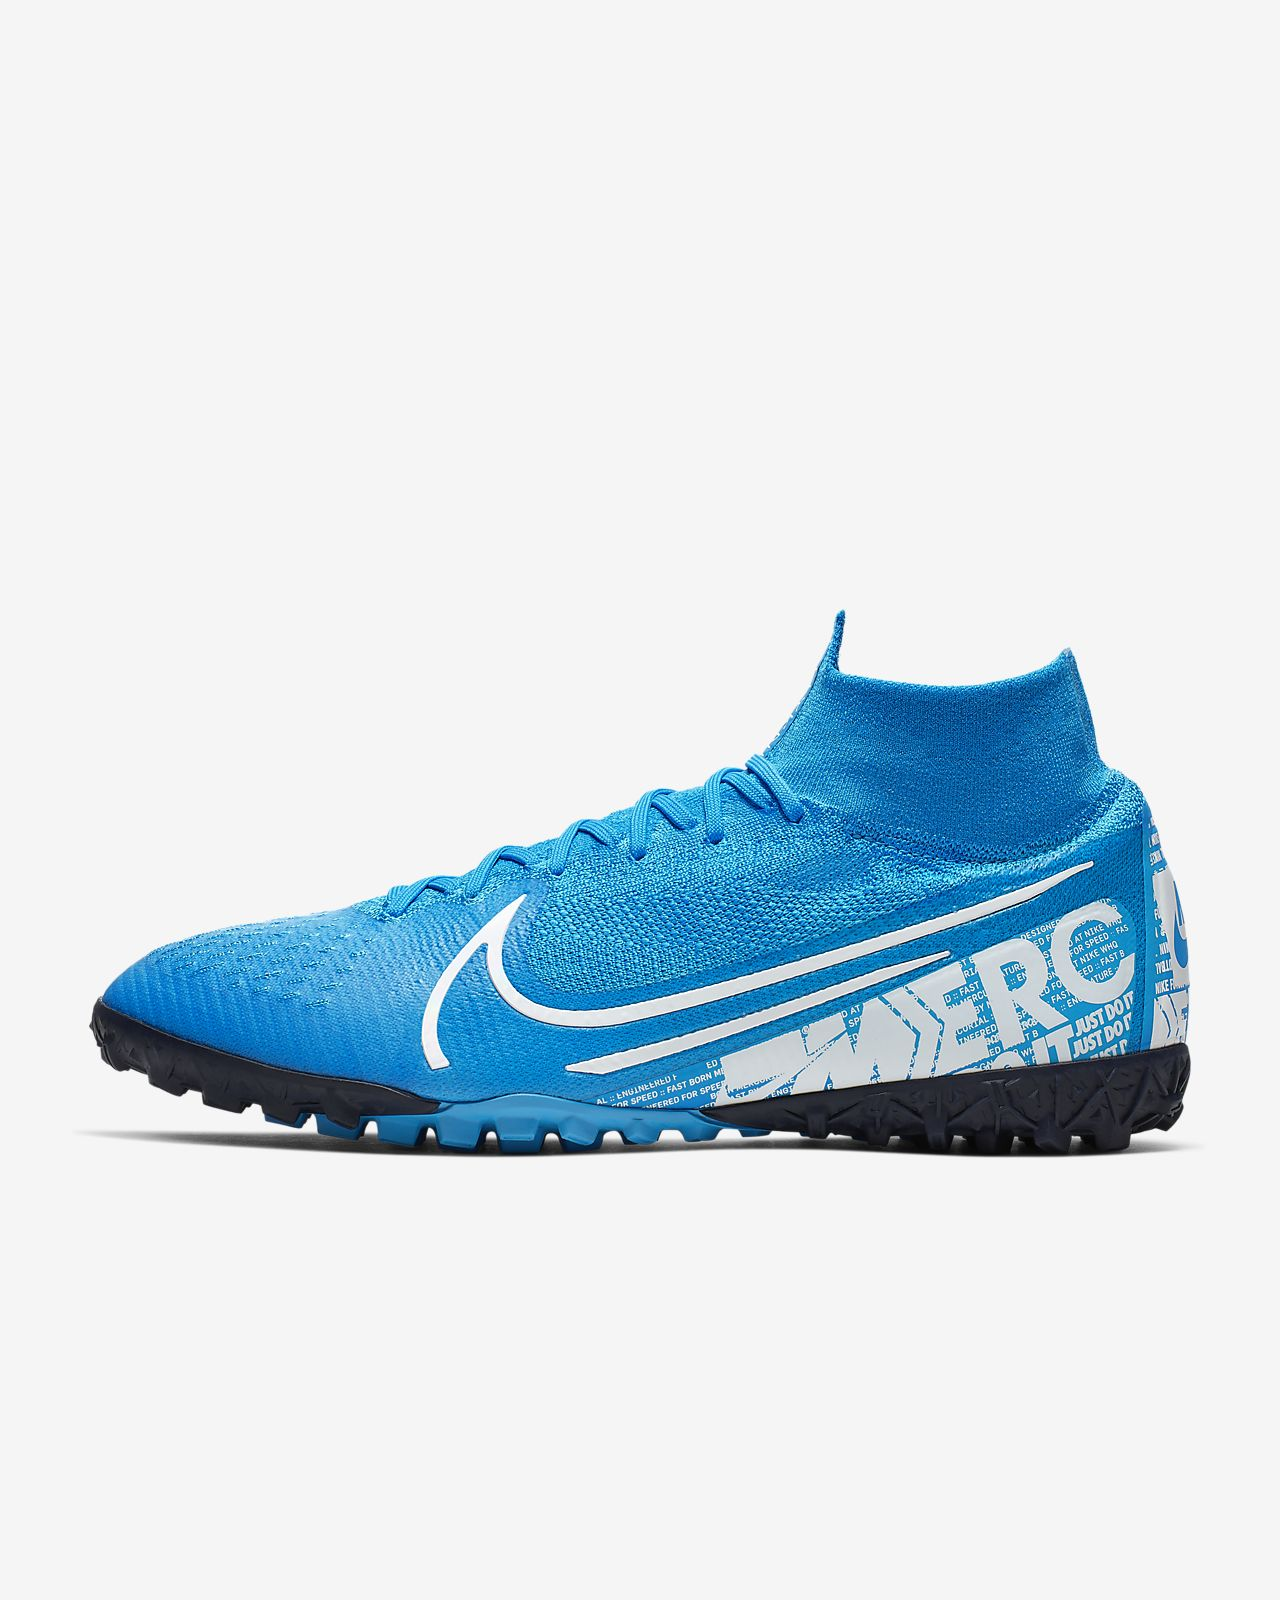 Nike Mercurial Superfly 7 Elite TF Artificial-Turf Football Shoe